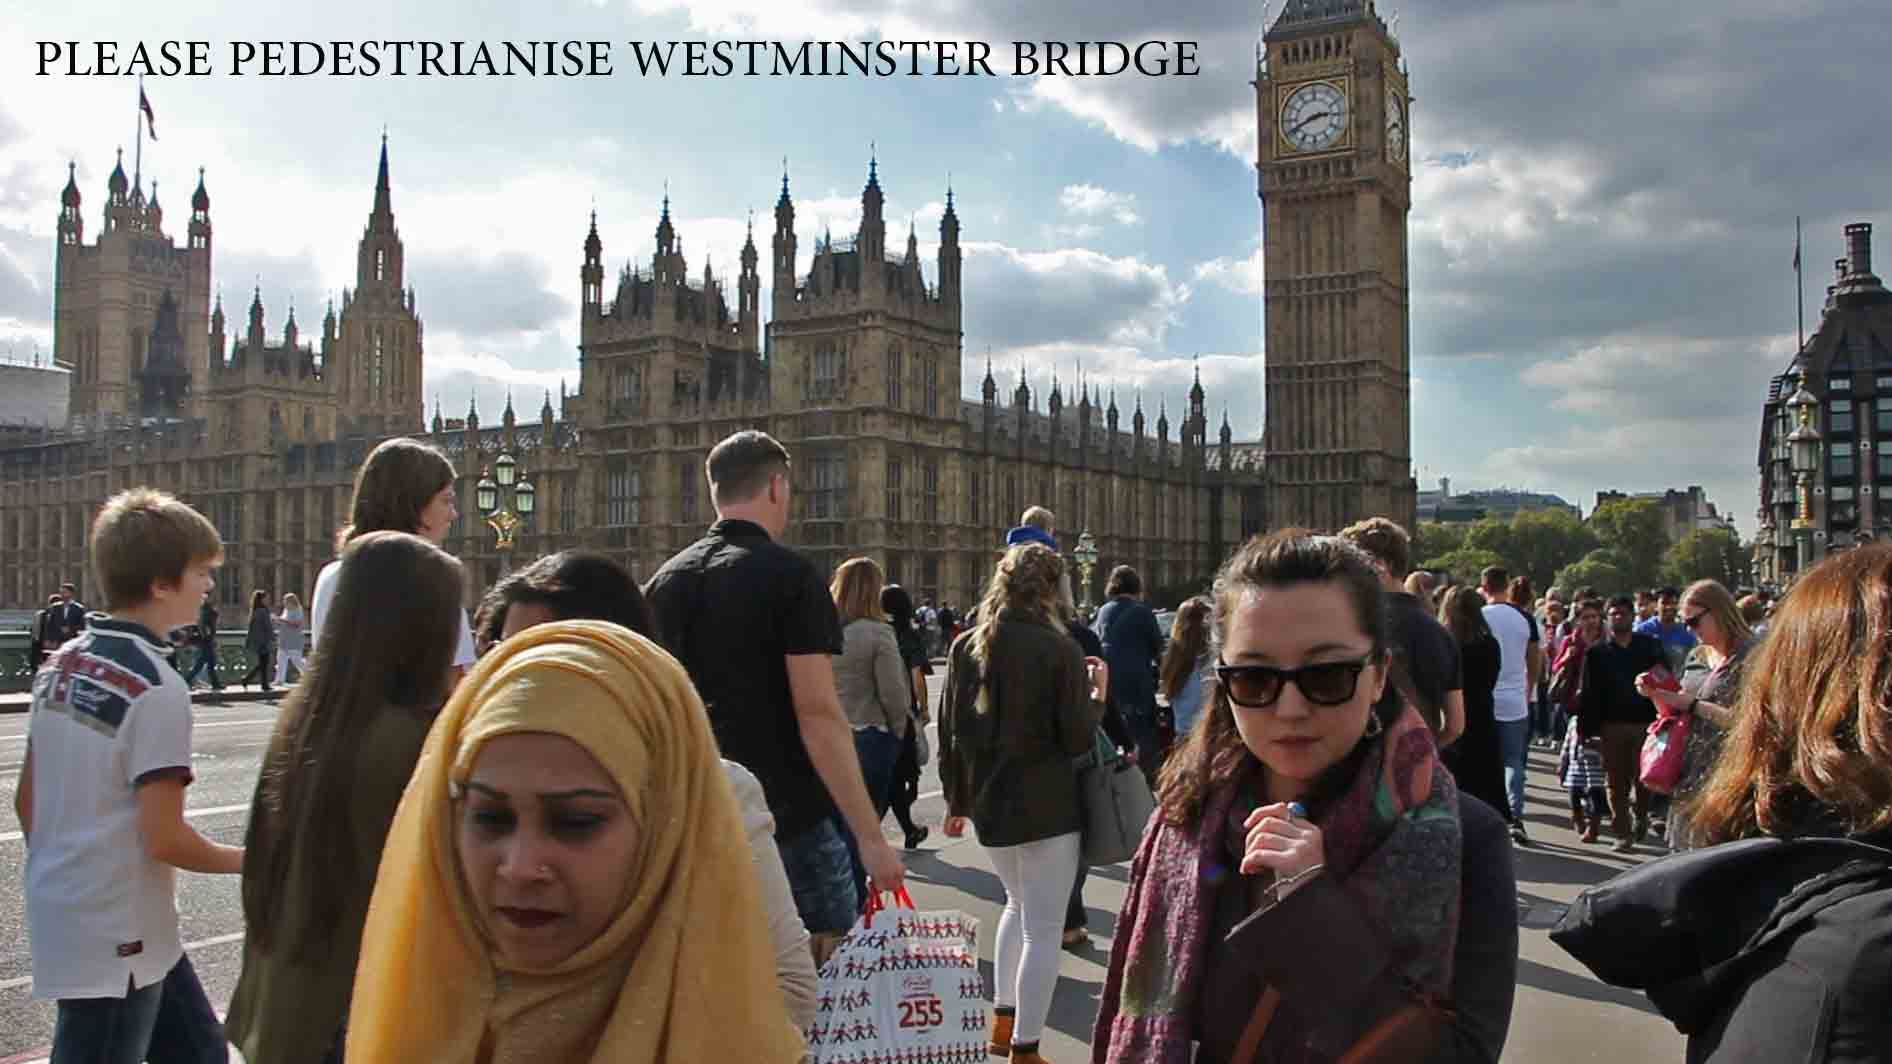 Westminster Bridge needs cycle lanes – and it also needs to be pedestrianised